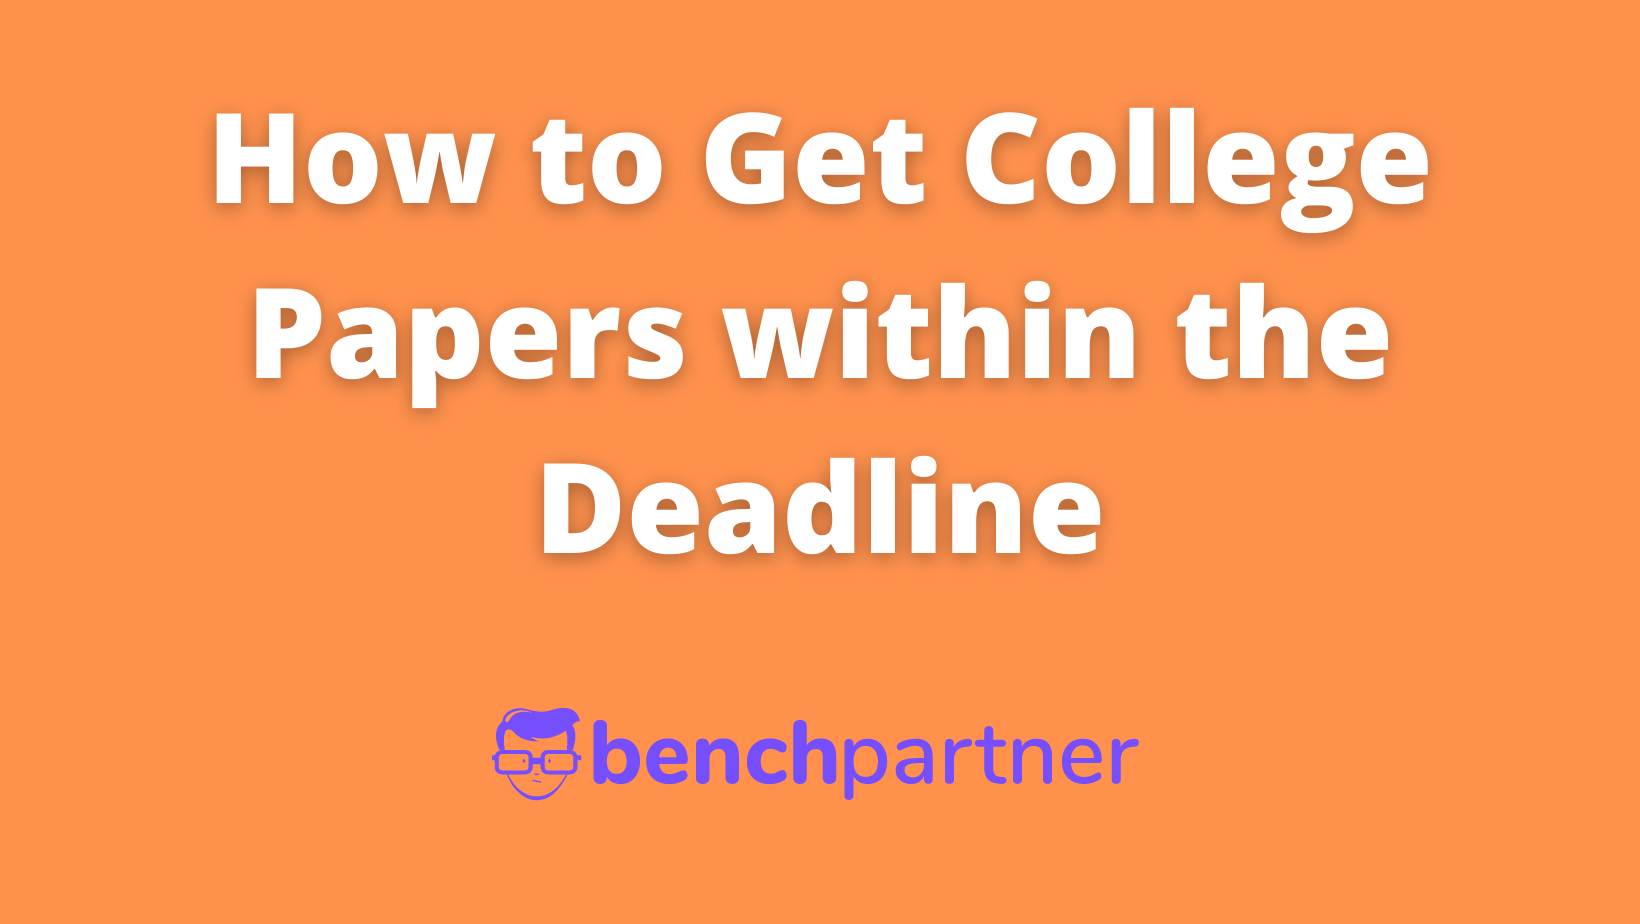 How to Get College Papers within the Deadline